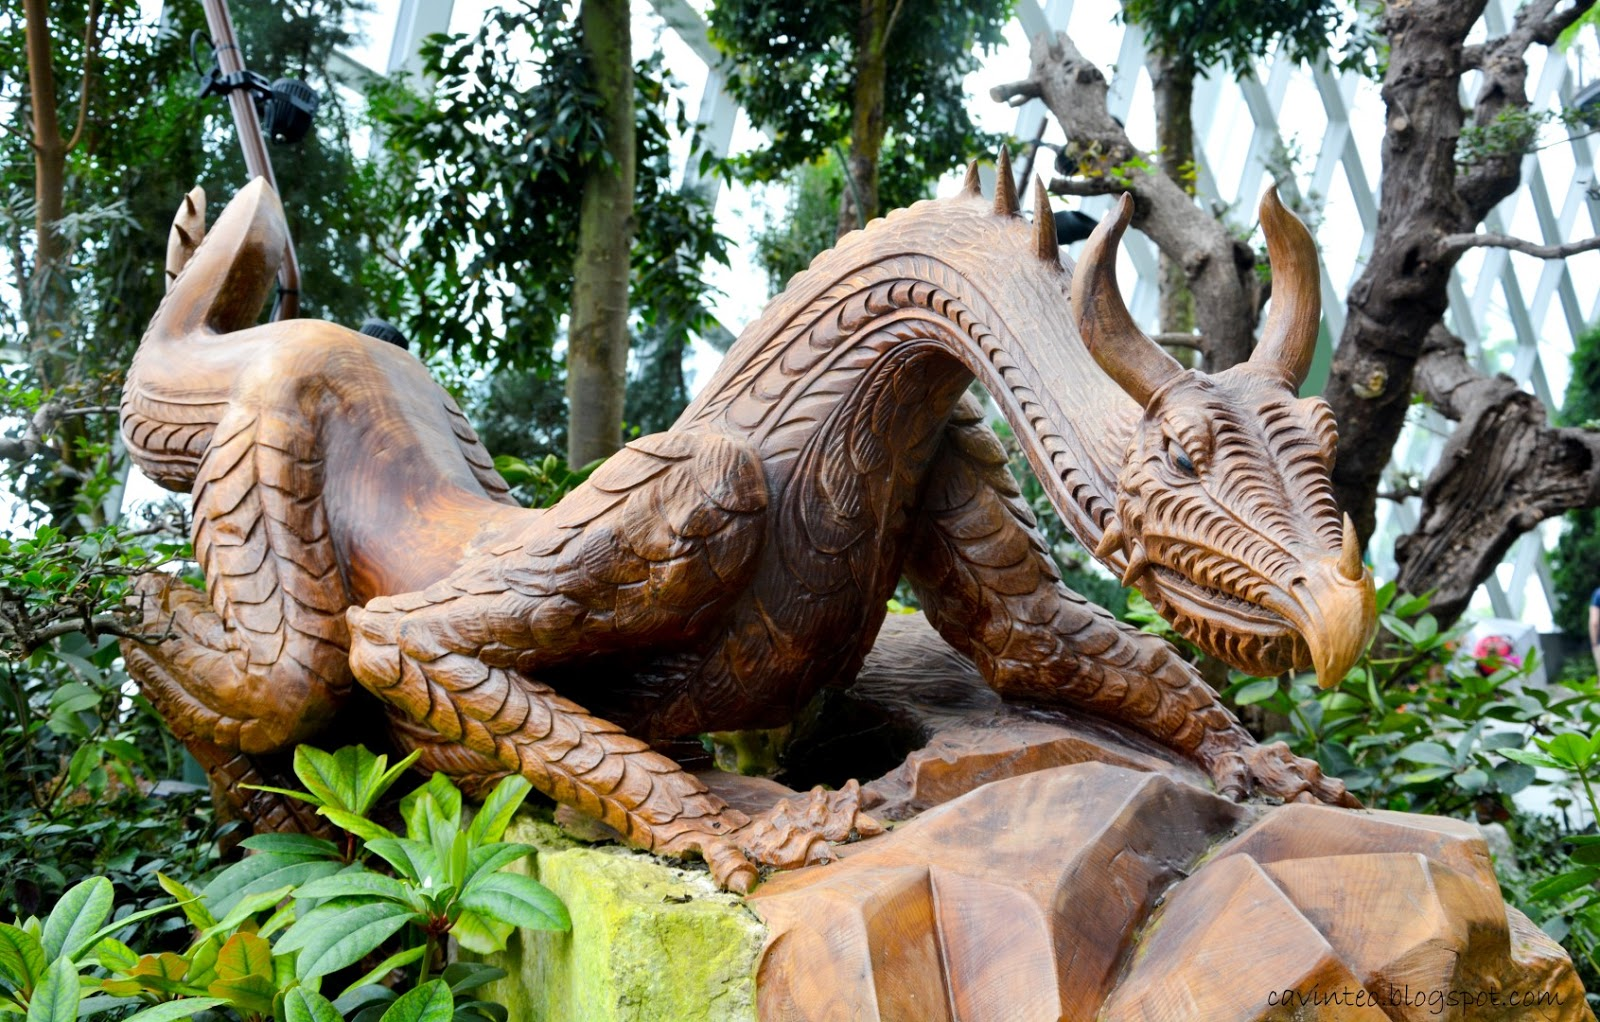 Garden By The Bay Blog entree kibbles: cloud forest in 2017 @ gardensthe bay [singapore]